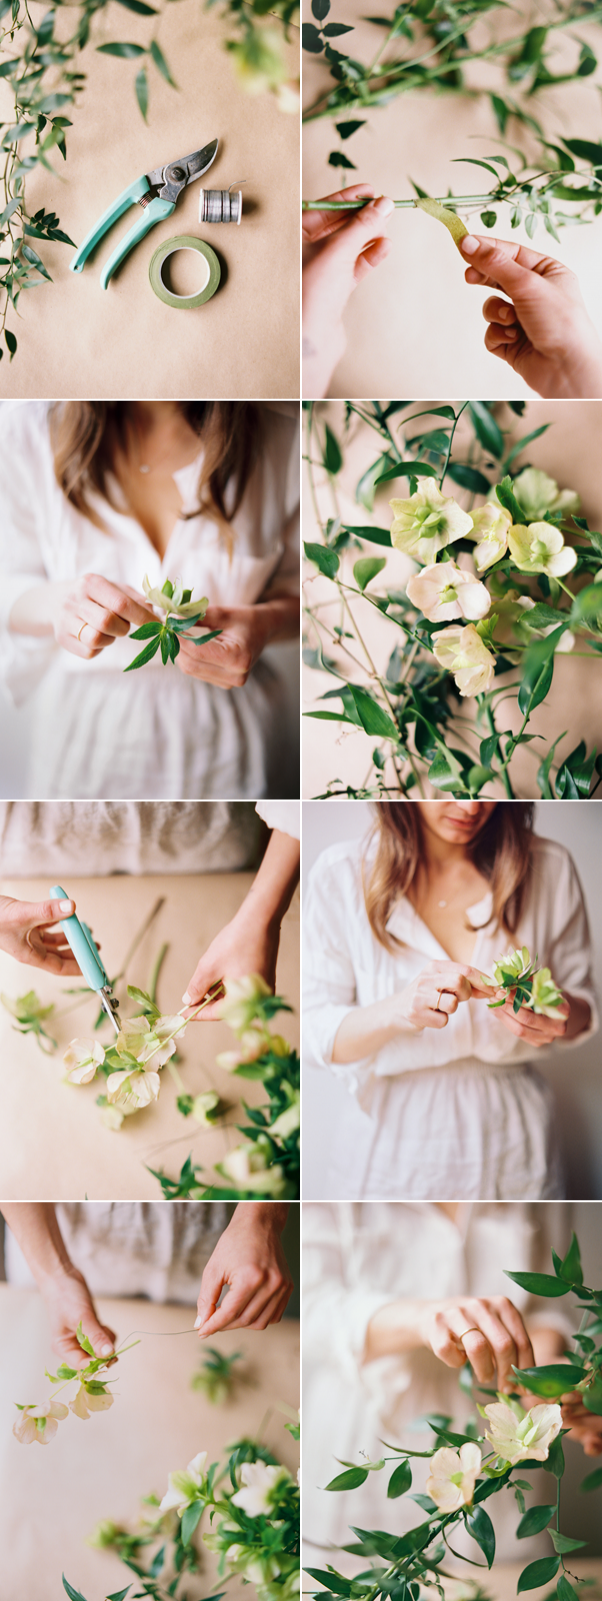 diy-spring-wedding-garland-tutorial-steps